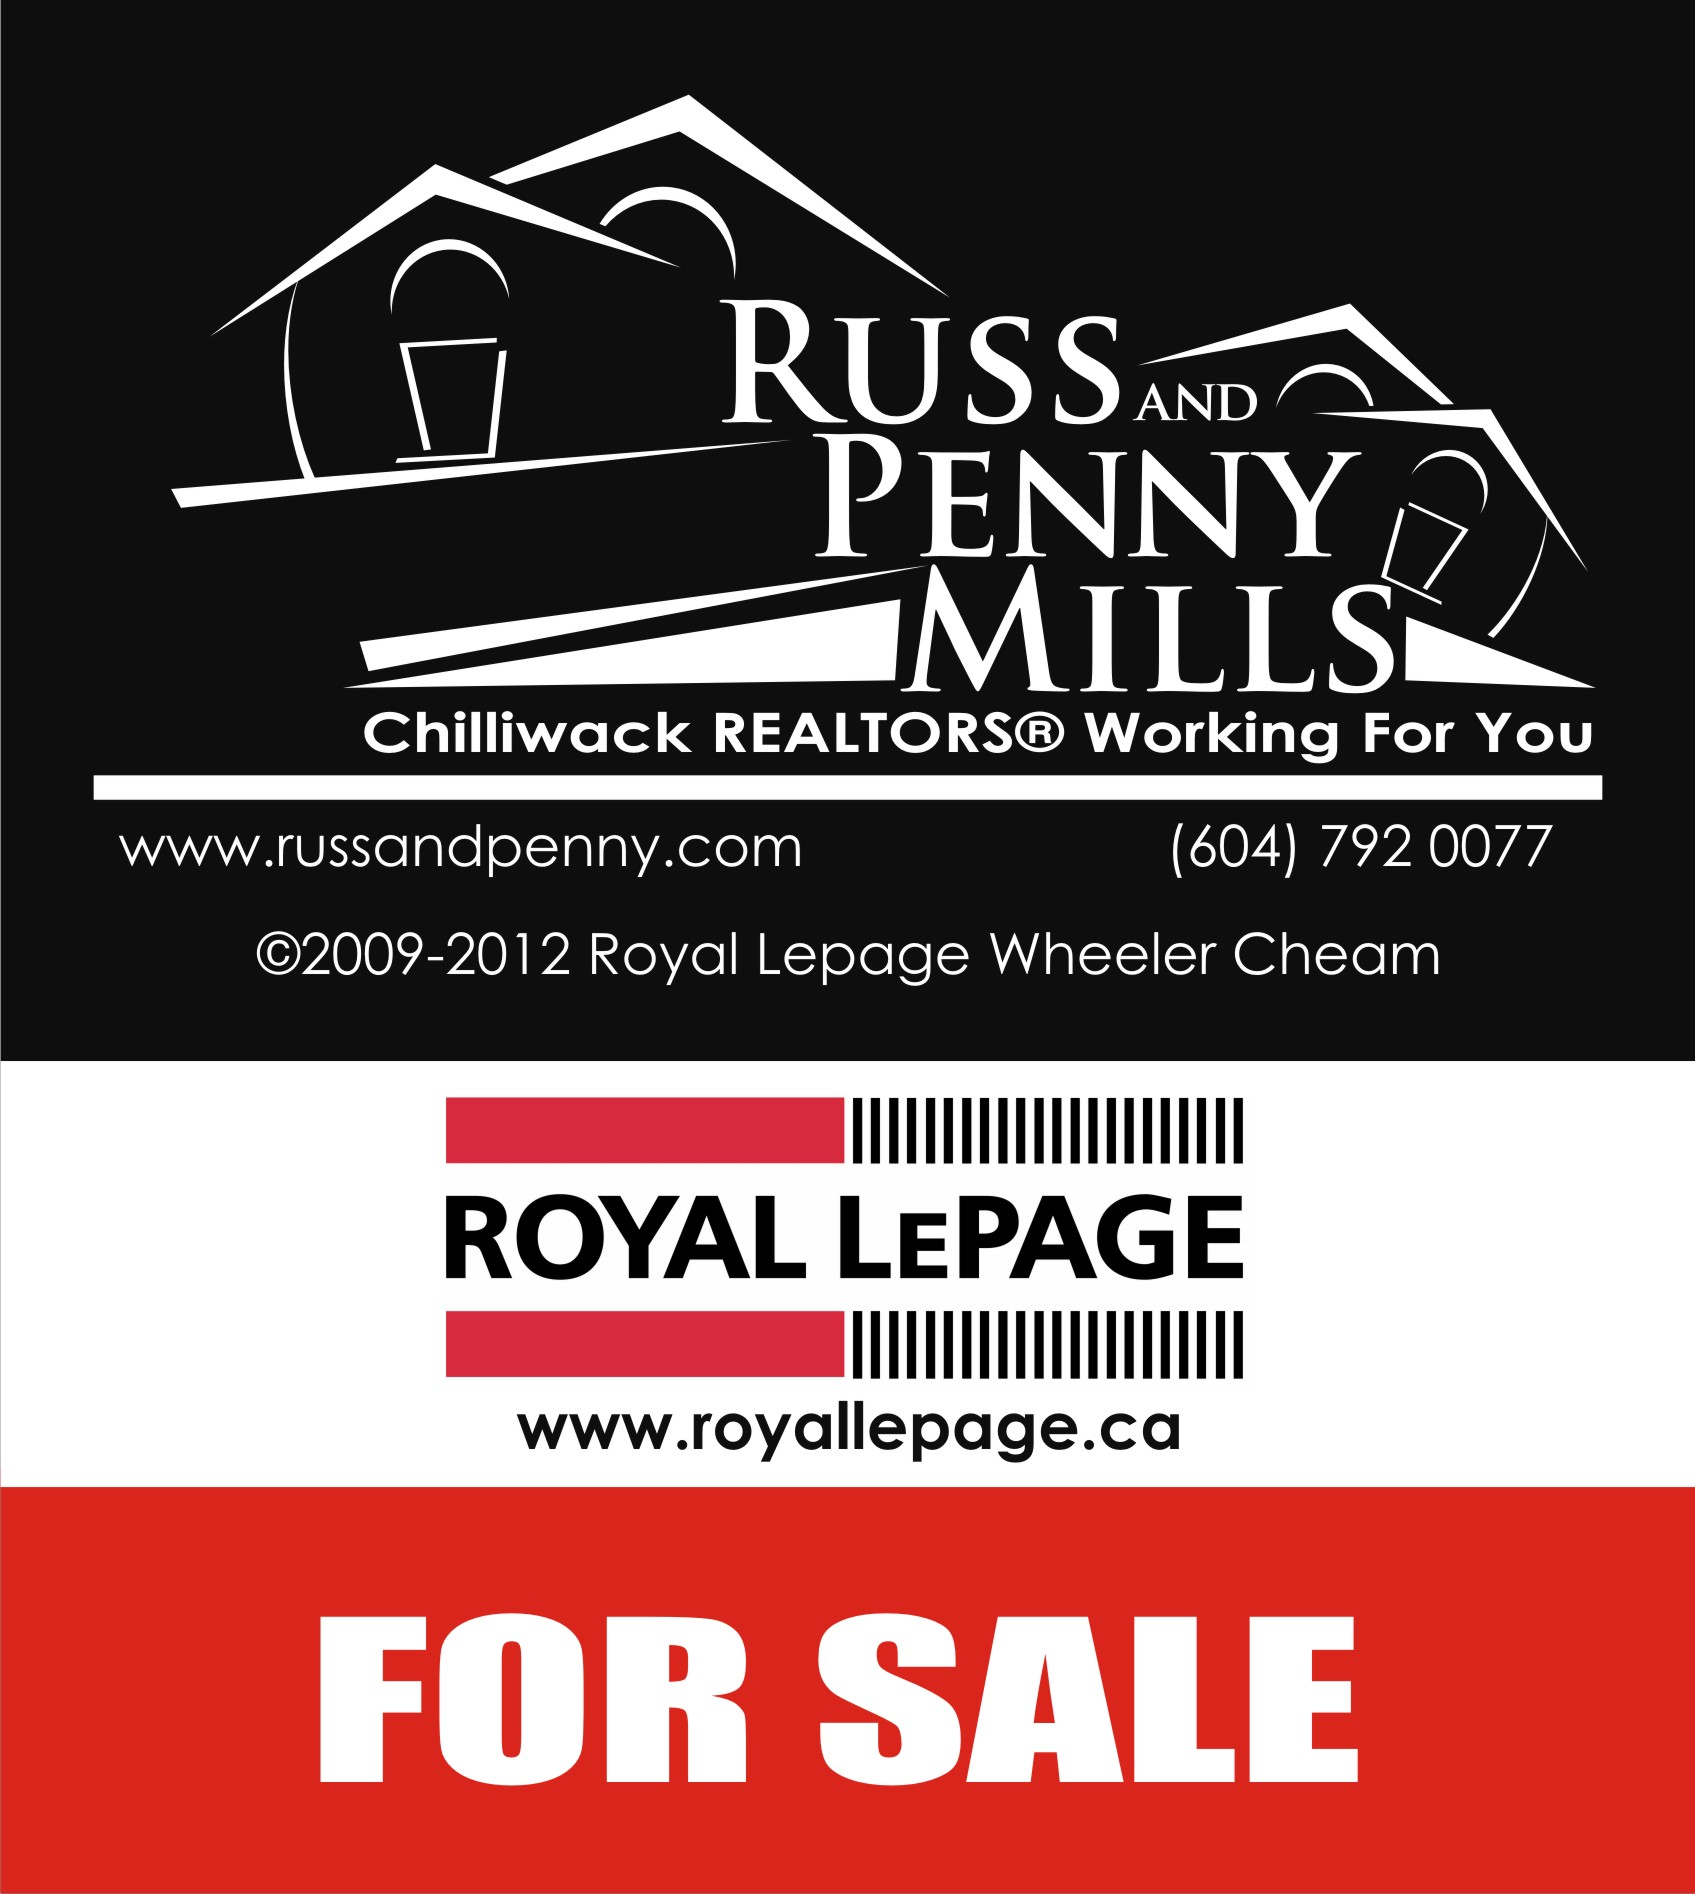 Custom Design by Private User - Entry No. 72 in the Custom Design Contest Fun Custom Design for Russ and Penny Mills (realtors).